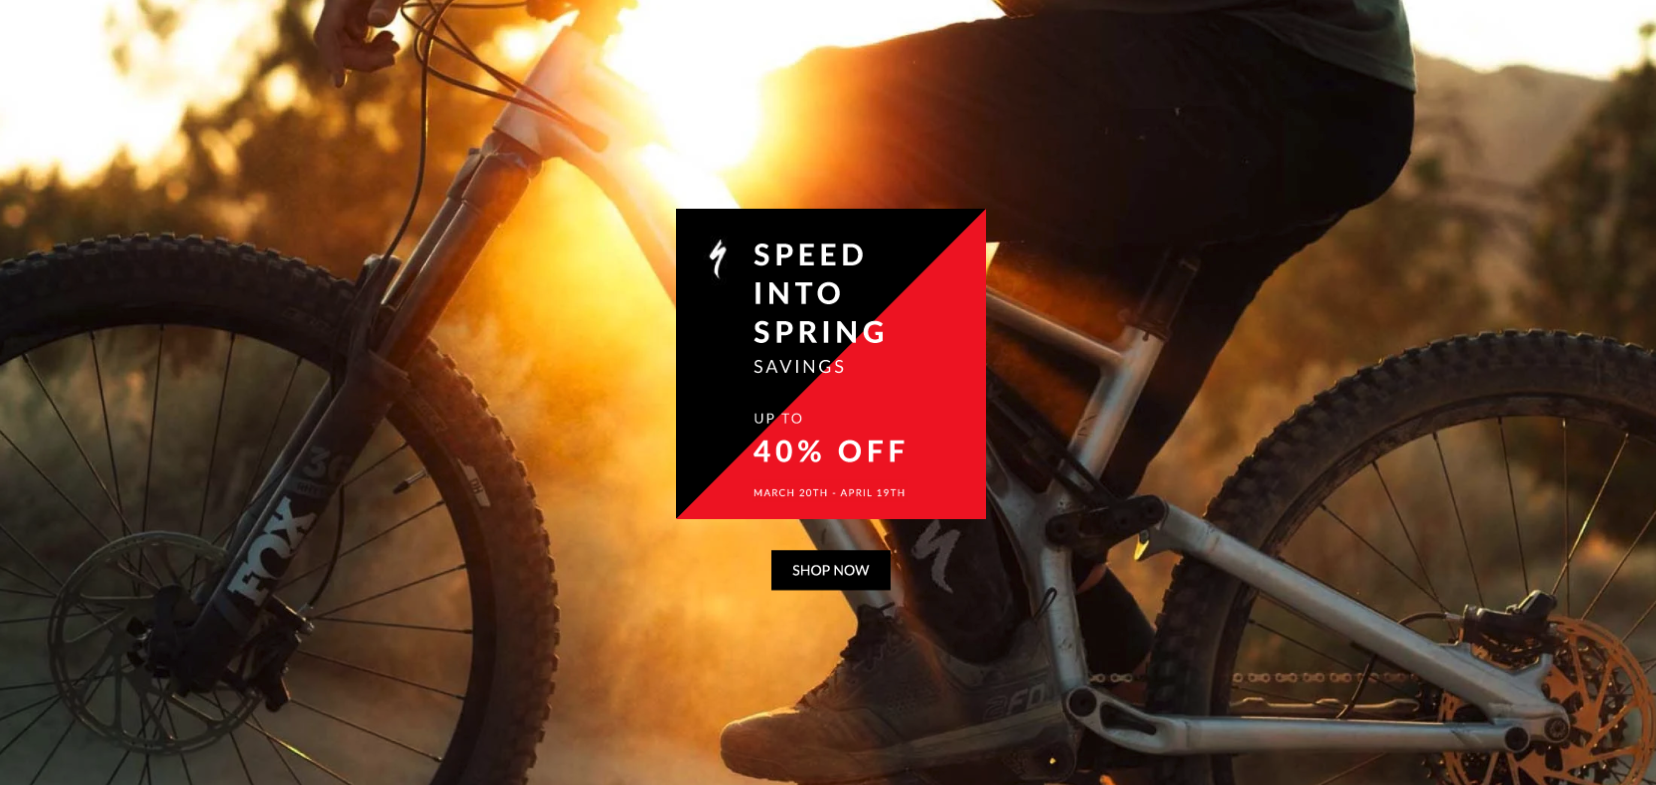 Speed into spring with deals on Specialized tires, pumps, shoes and more!